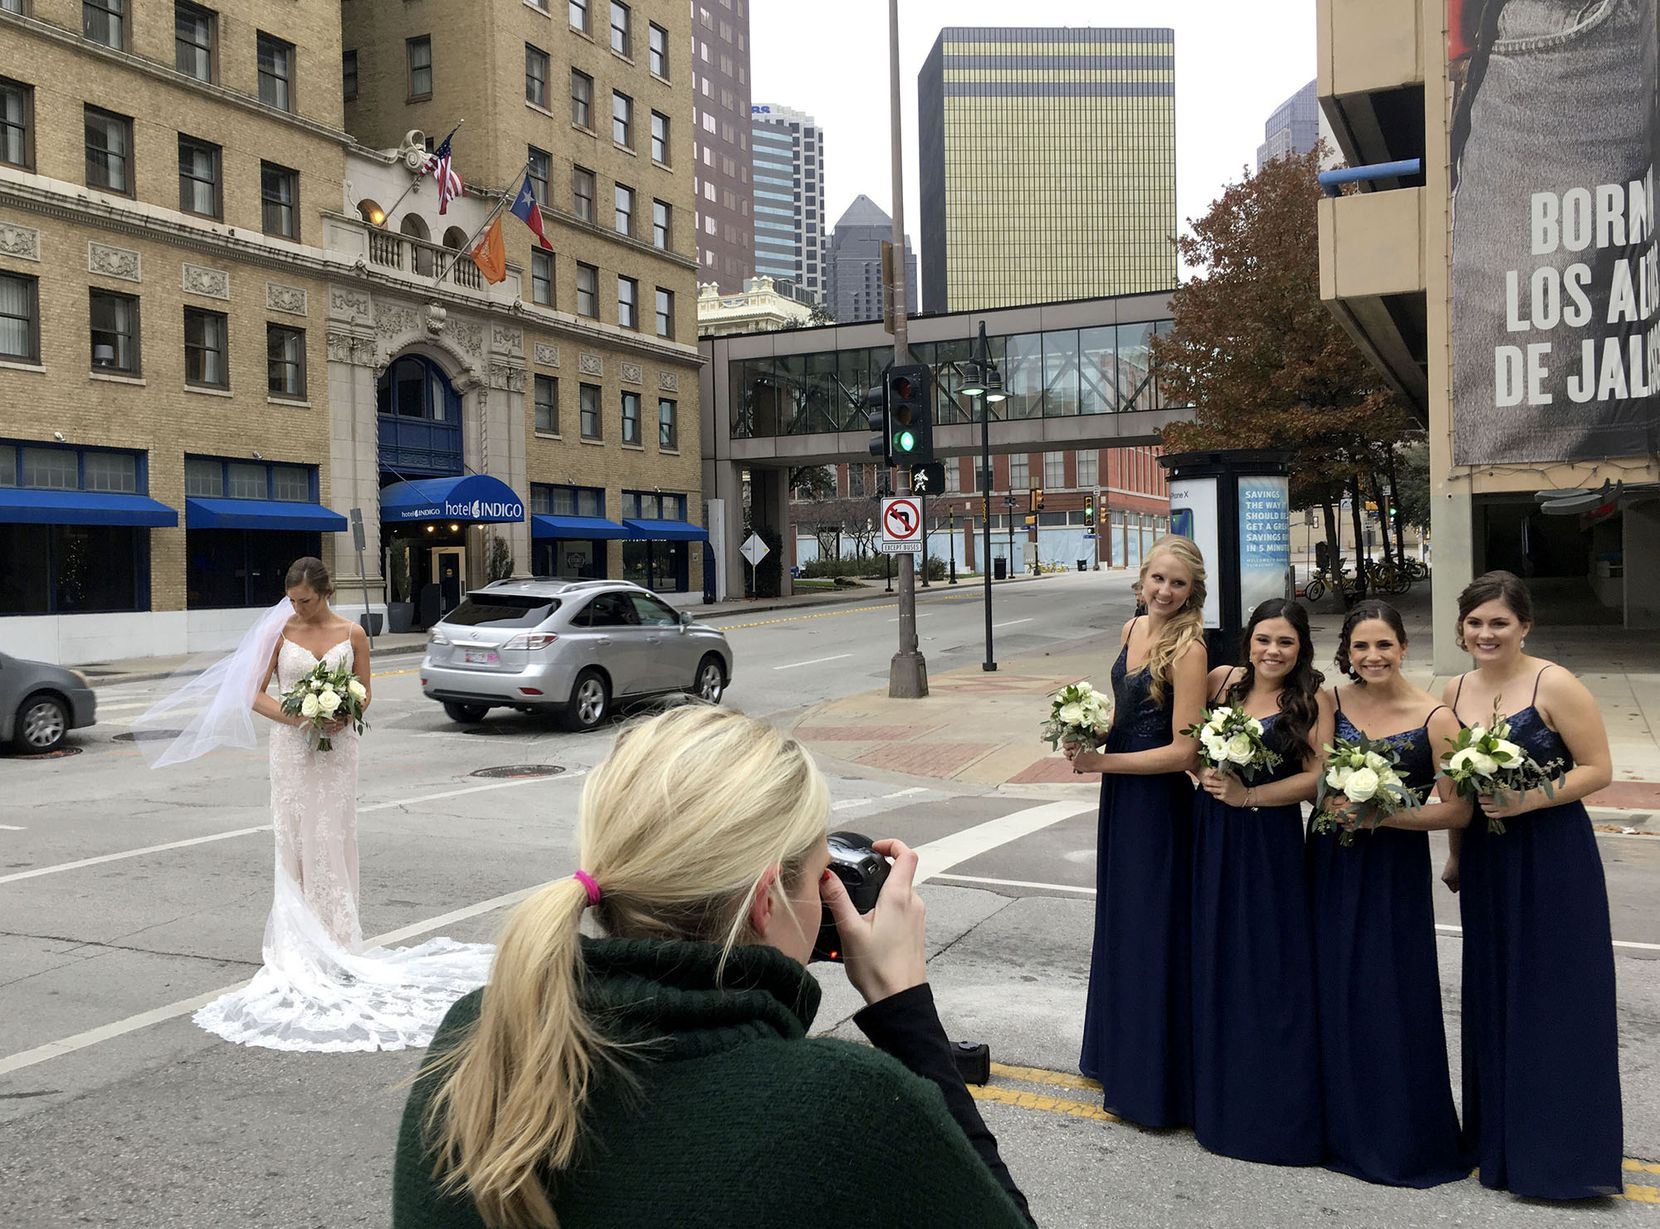 """""""Beauty is pain,"""" quipped bride-to-be Tori Mellinger (left) tongue-in-cheek as she was getting outdoor portraits taken with her bridal party (from left) Lindsey Miller, Jenna Mellinger, Erin Mellinger and Stephanie Plugge. Photographer Elizabeth Evans, of Eliza Kennard Photography, was snapping their photos on a 28-degree afternoon (in a wind chill that felt like 16) before Tori Mellinger's nuptials to Andrew Plugge in downtown Dallas on Sunday."""